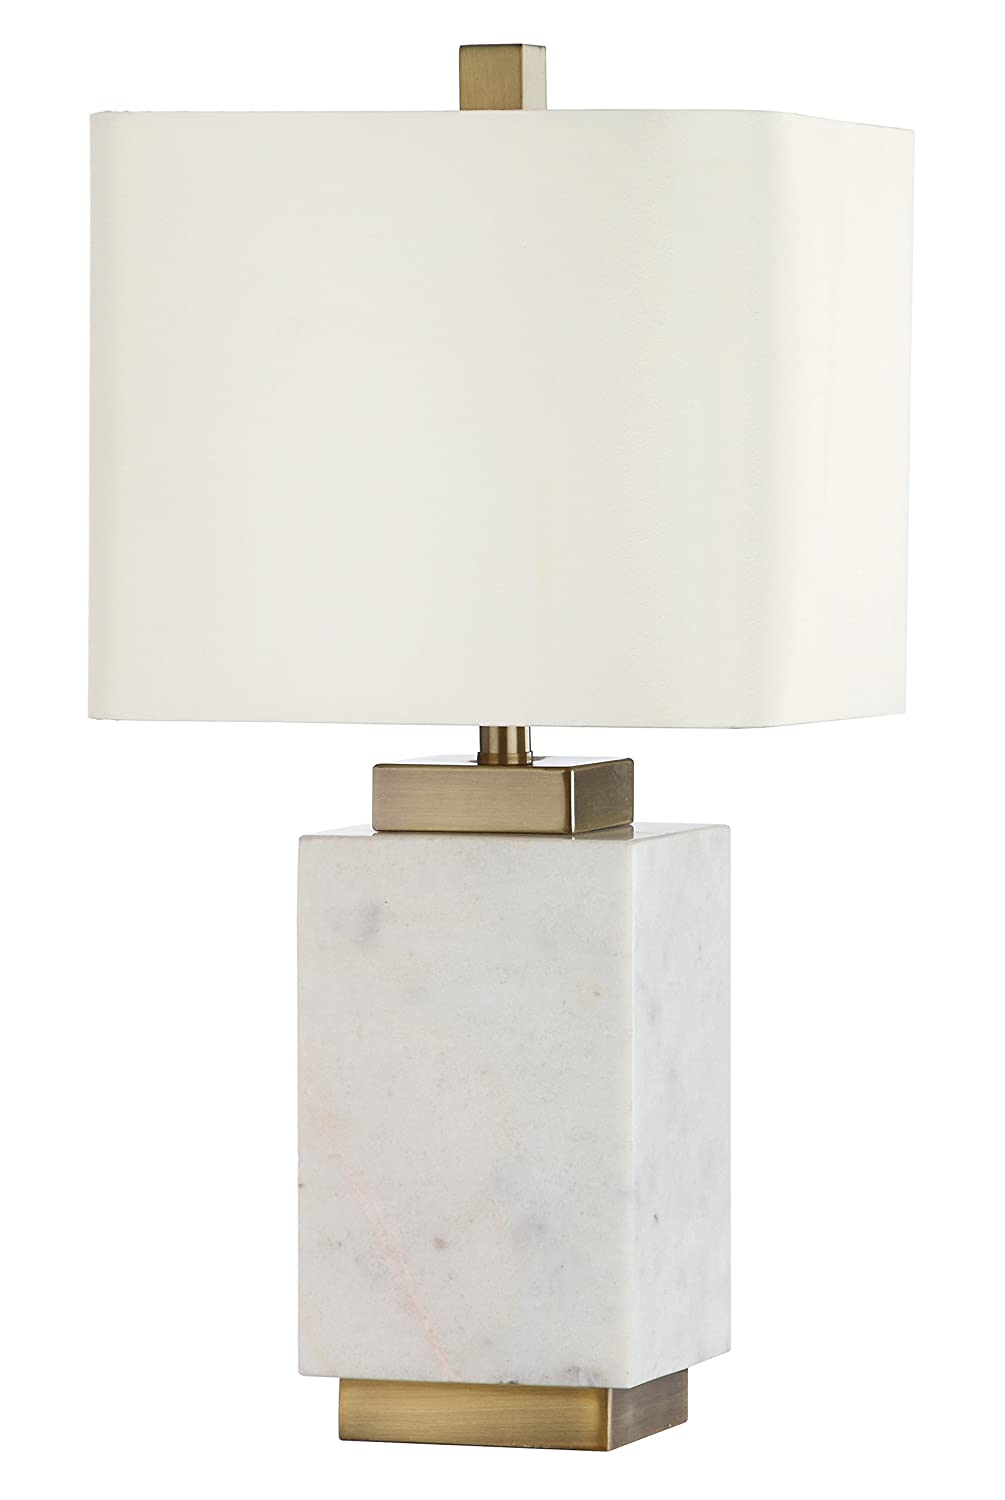 Mariana Home 830032 Audra Marble Table Lamp White Brass Amazon Com